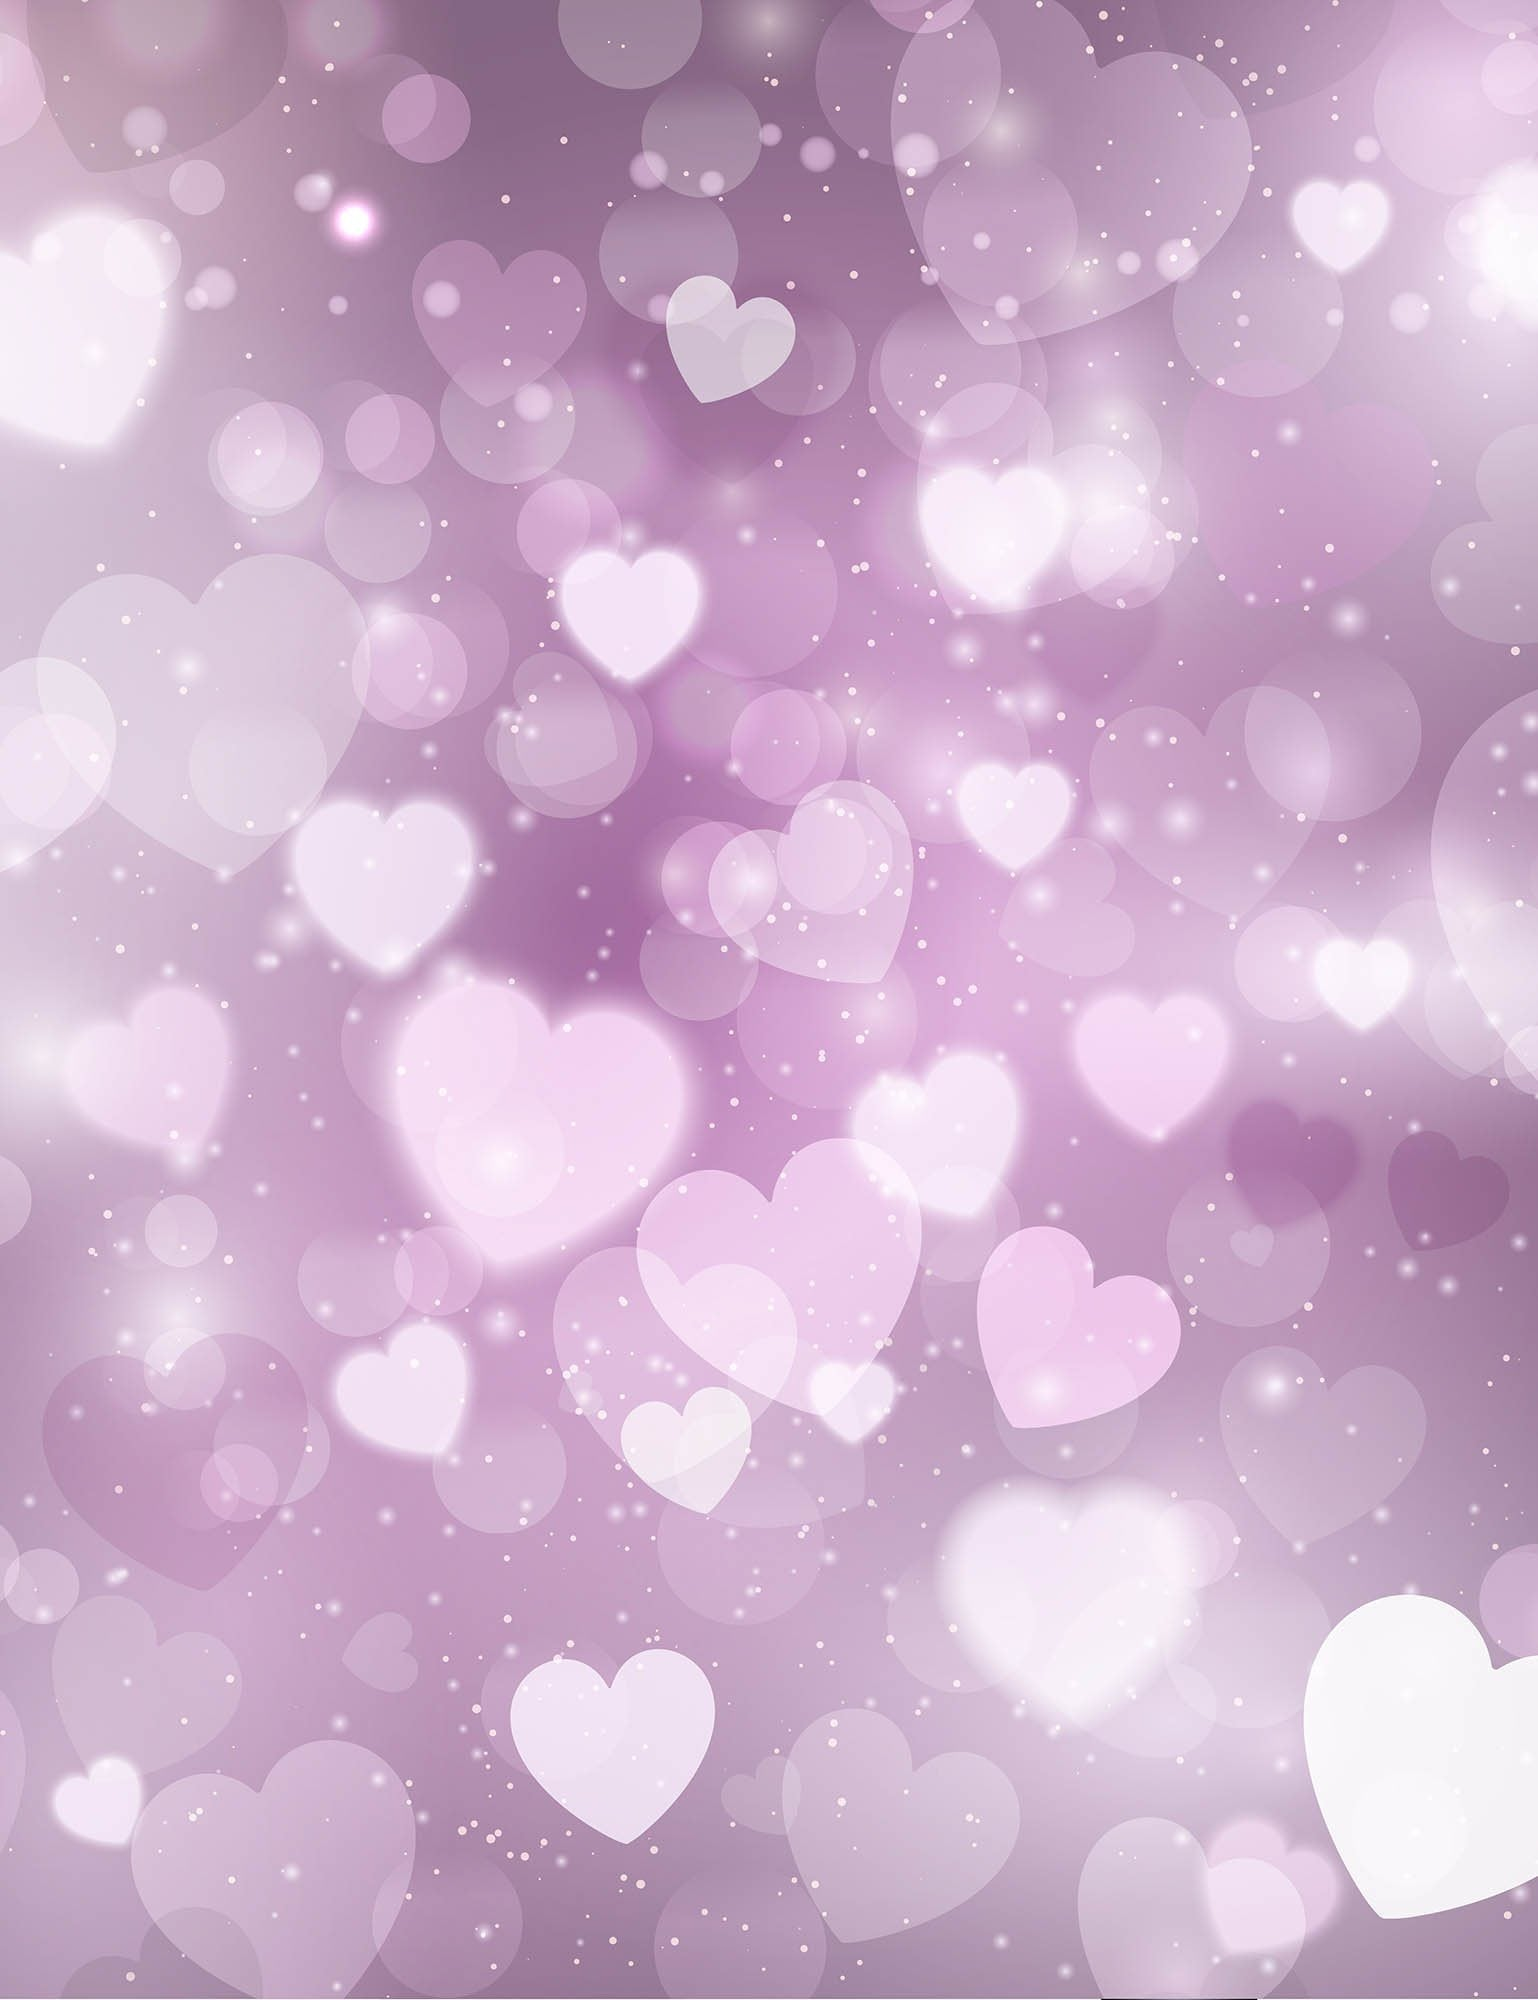 abstract bokeh pink hearts sparkle background for valentines day